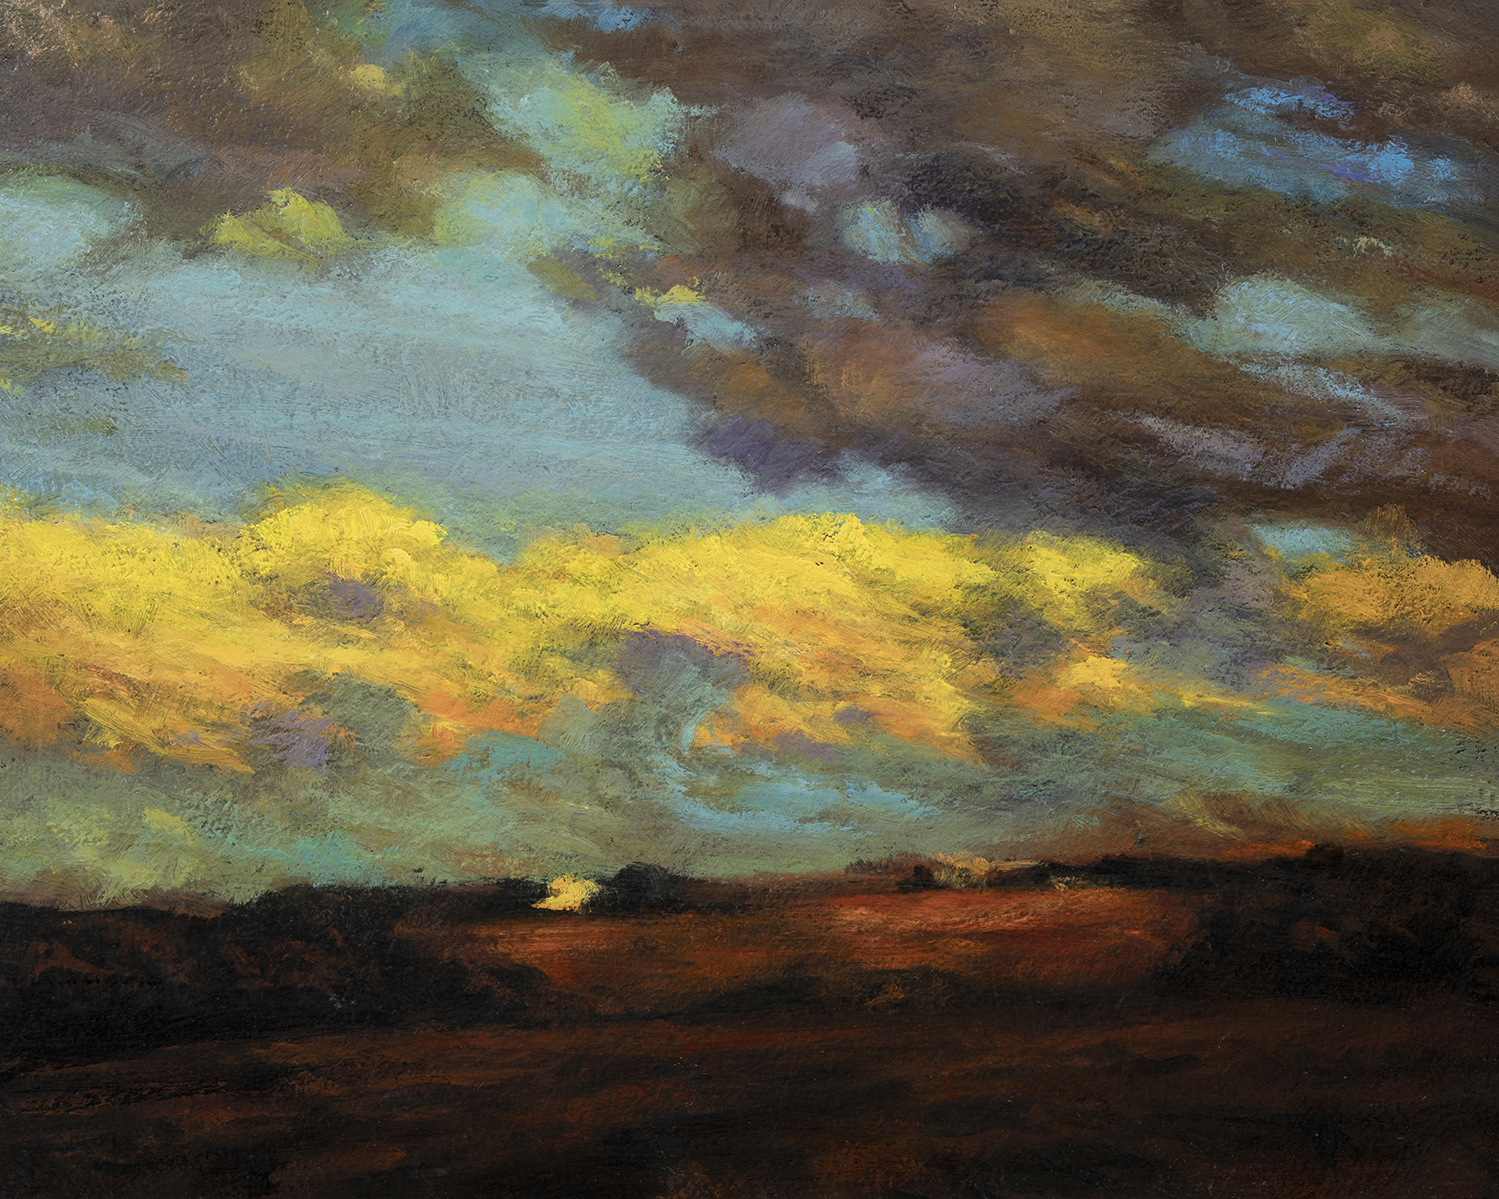 Study after: Charles Harold Davis Clouds after Storm by M Francis McCarthy - 8x10 Oil on Wood Panel